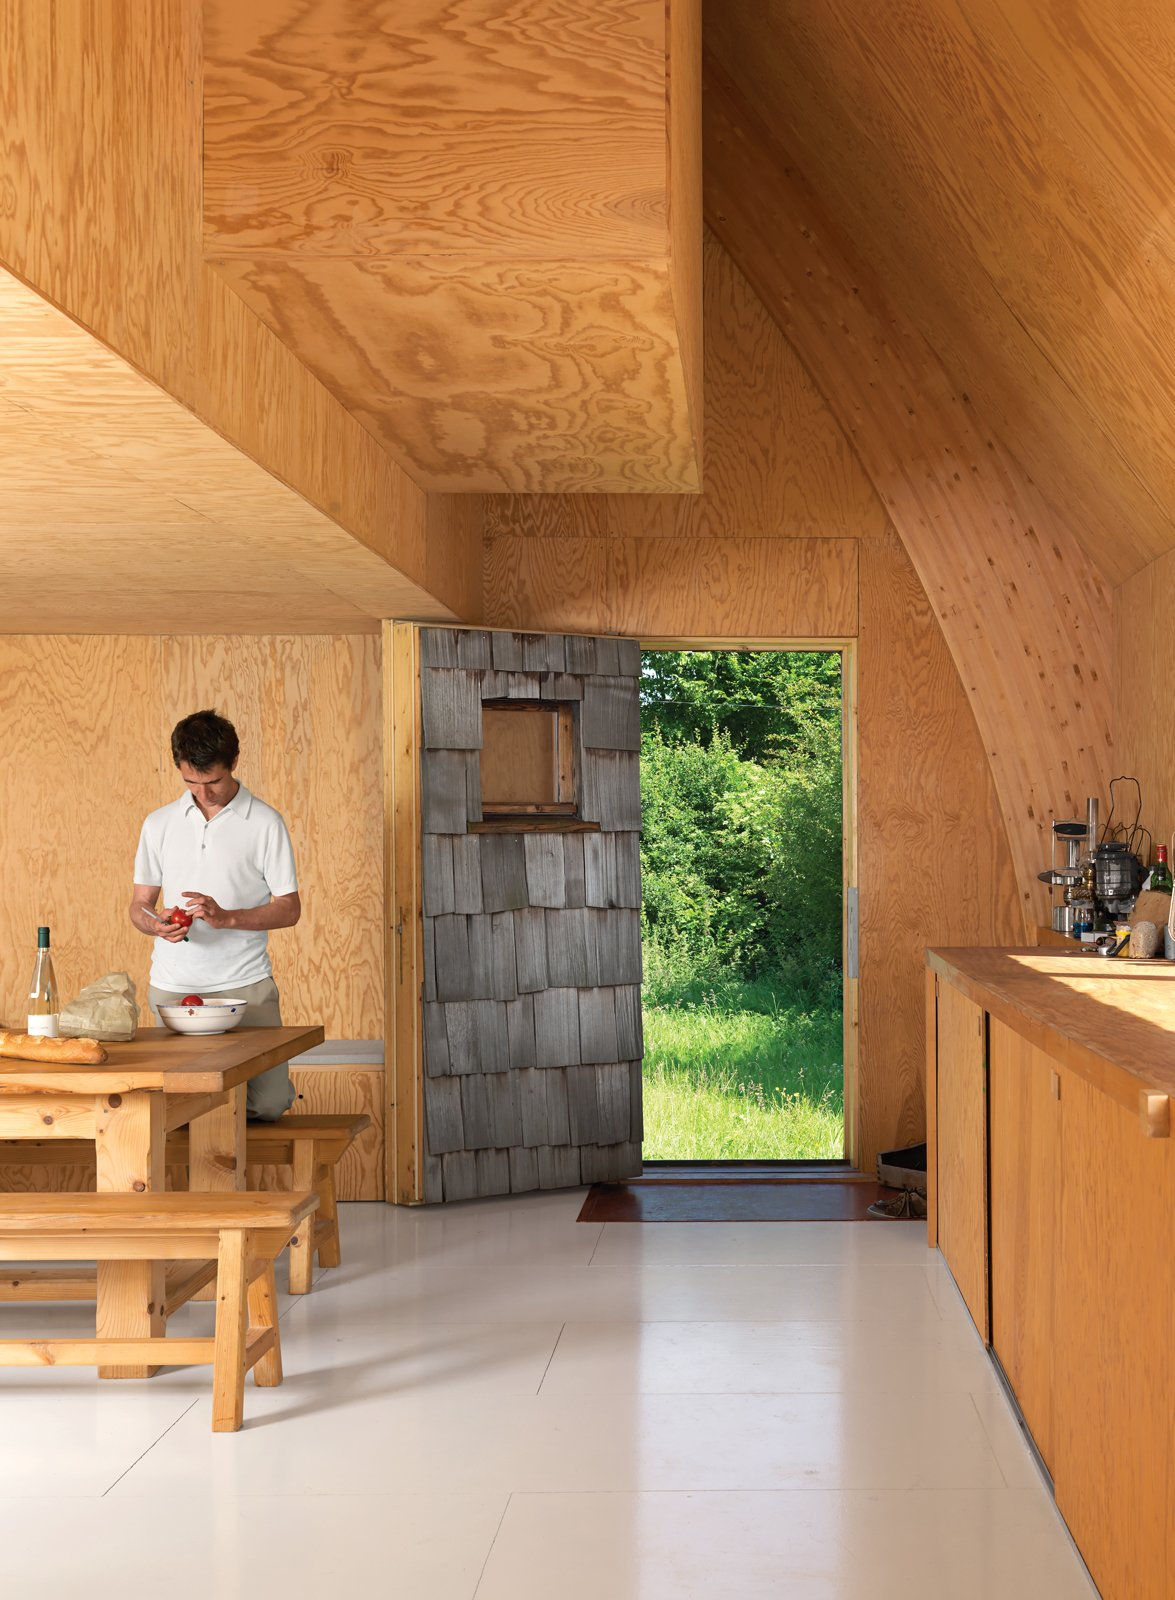 The exposed-wood motif continues inside, where plywood walls, as well as Barache and his guests, keep things warm. Tagged: Kitchen and Wood Cabinet.  Kitchen by Lara Deam from Modern Wooden A-Frame Retreat in France